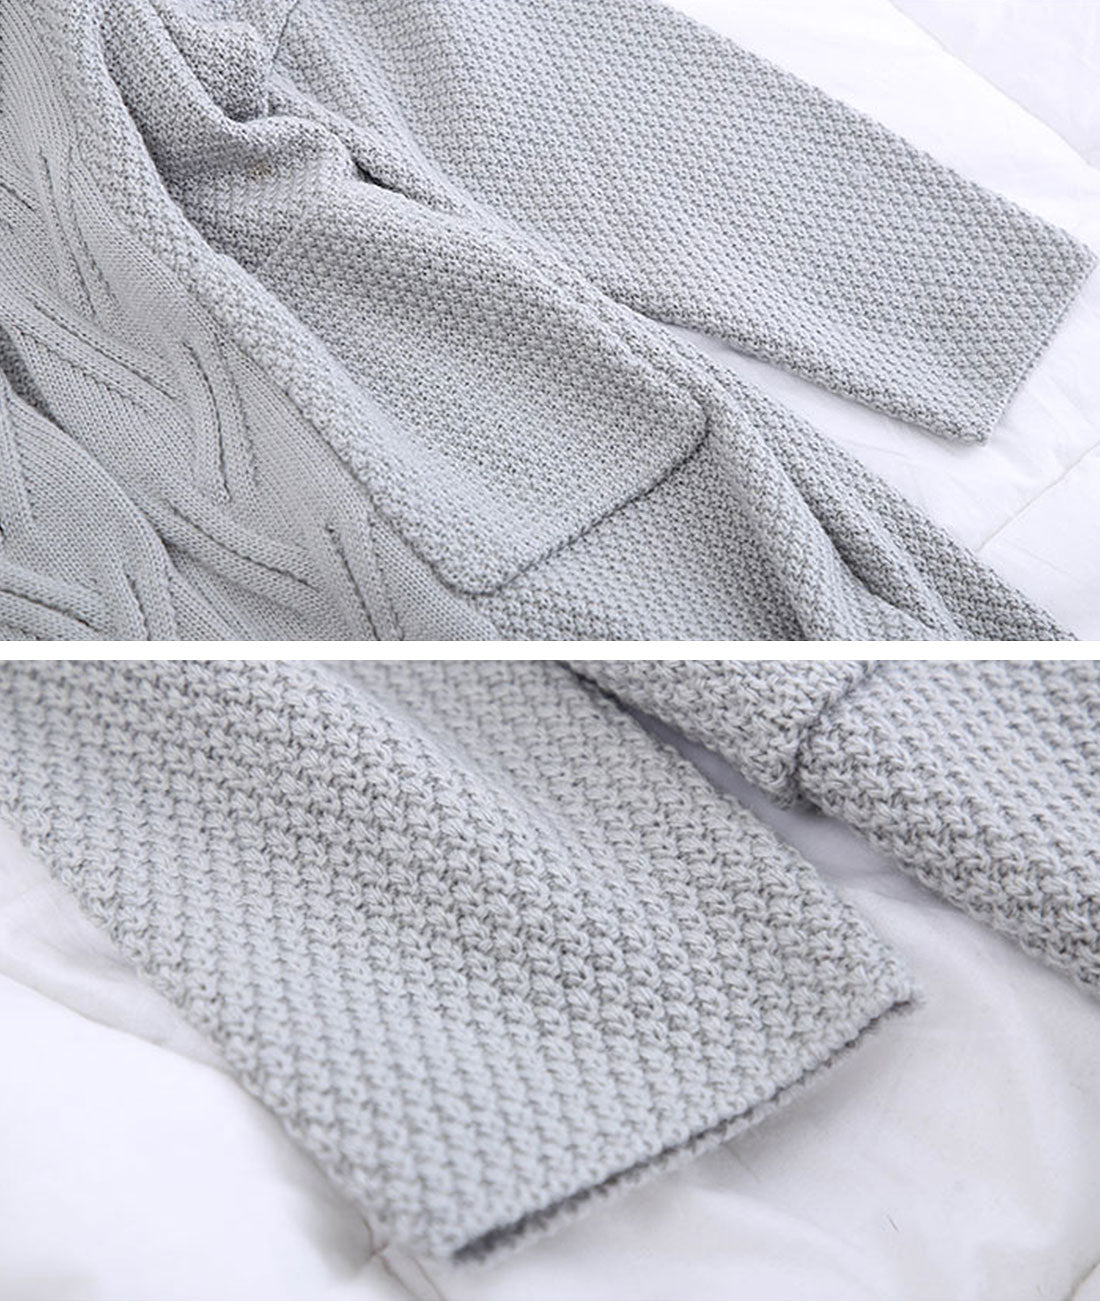 Diamond Long Cardigan Sweater with Pocket Details 5